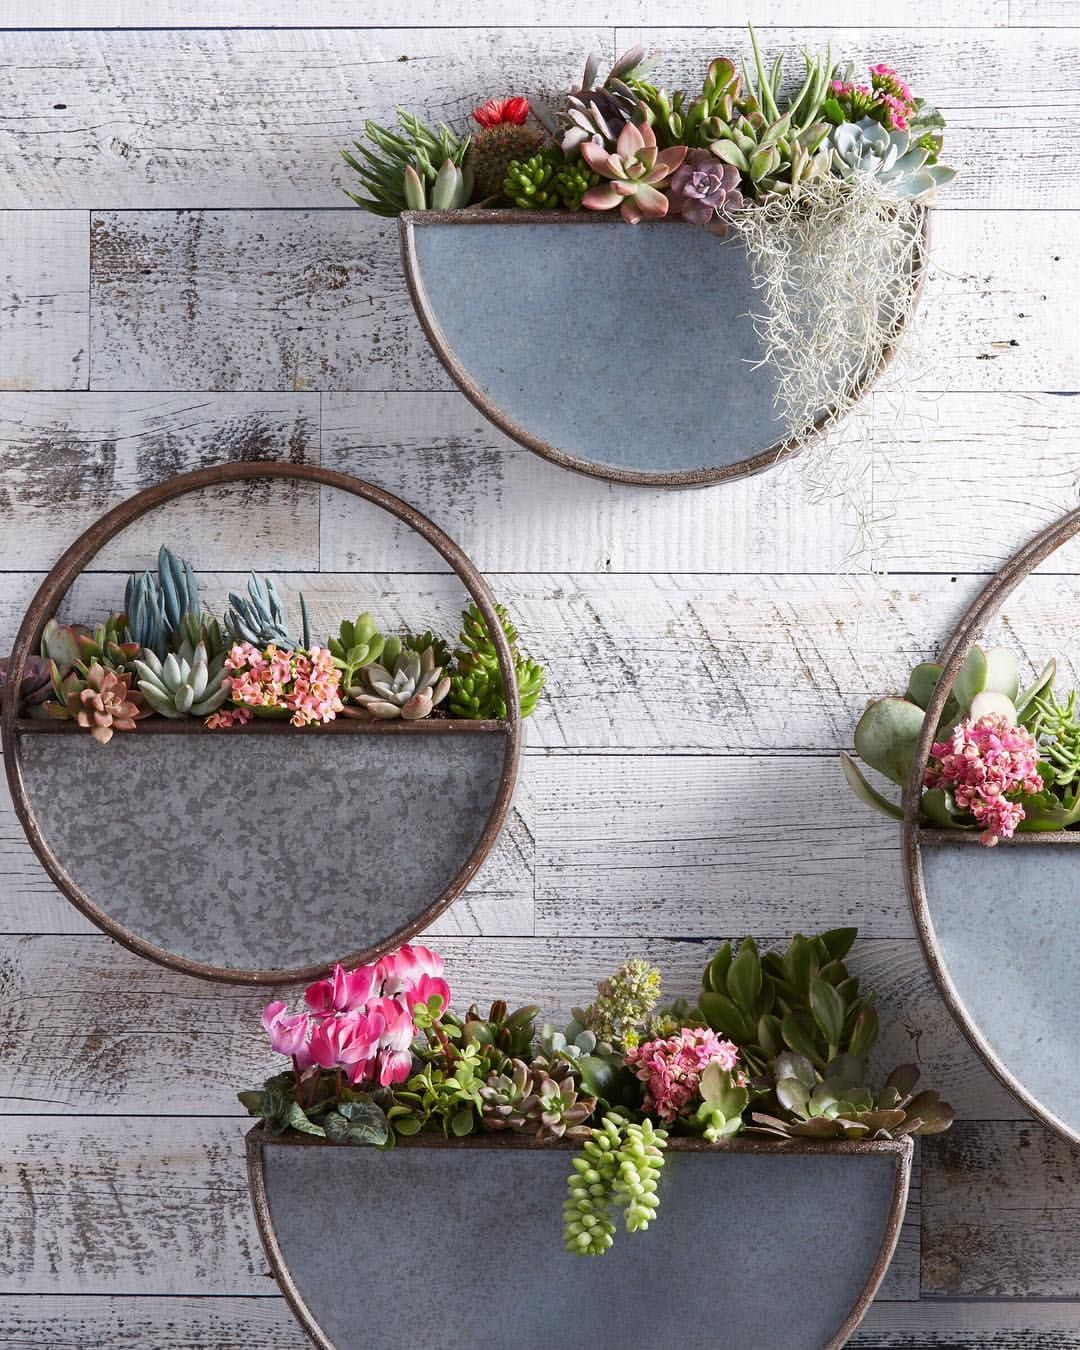 Made Of Galvanized Metal For A Rustic Look Our Galvanized Metal